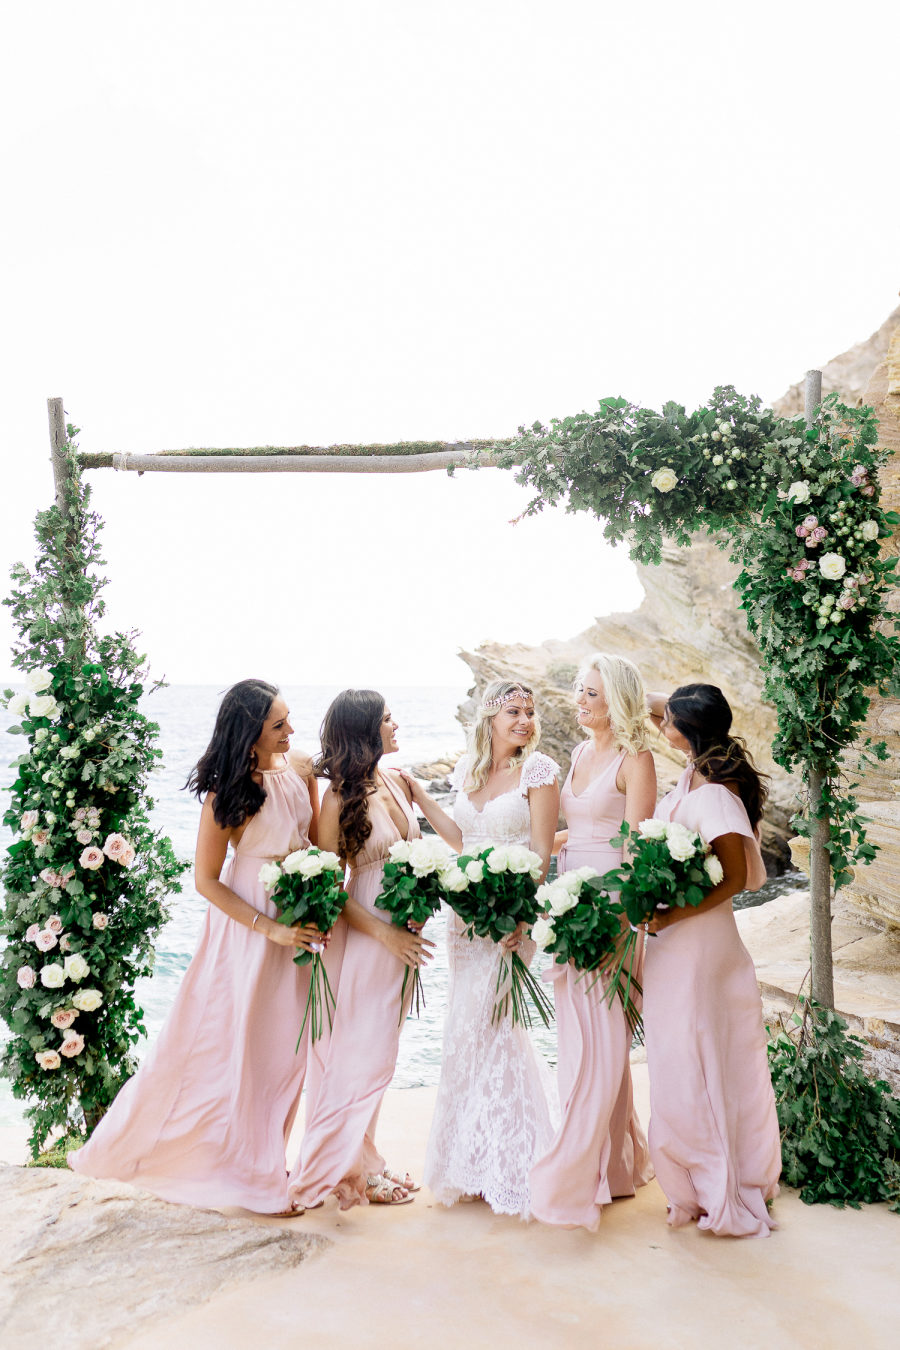 summer bridesmaids outfits in blush dresses